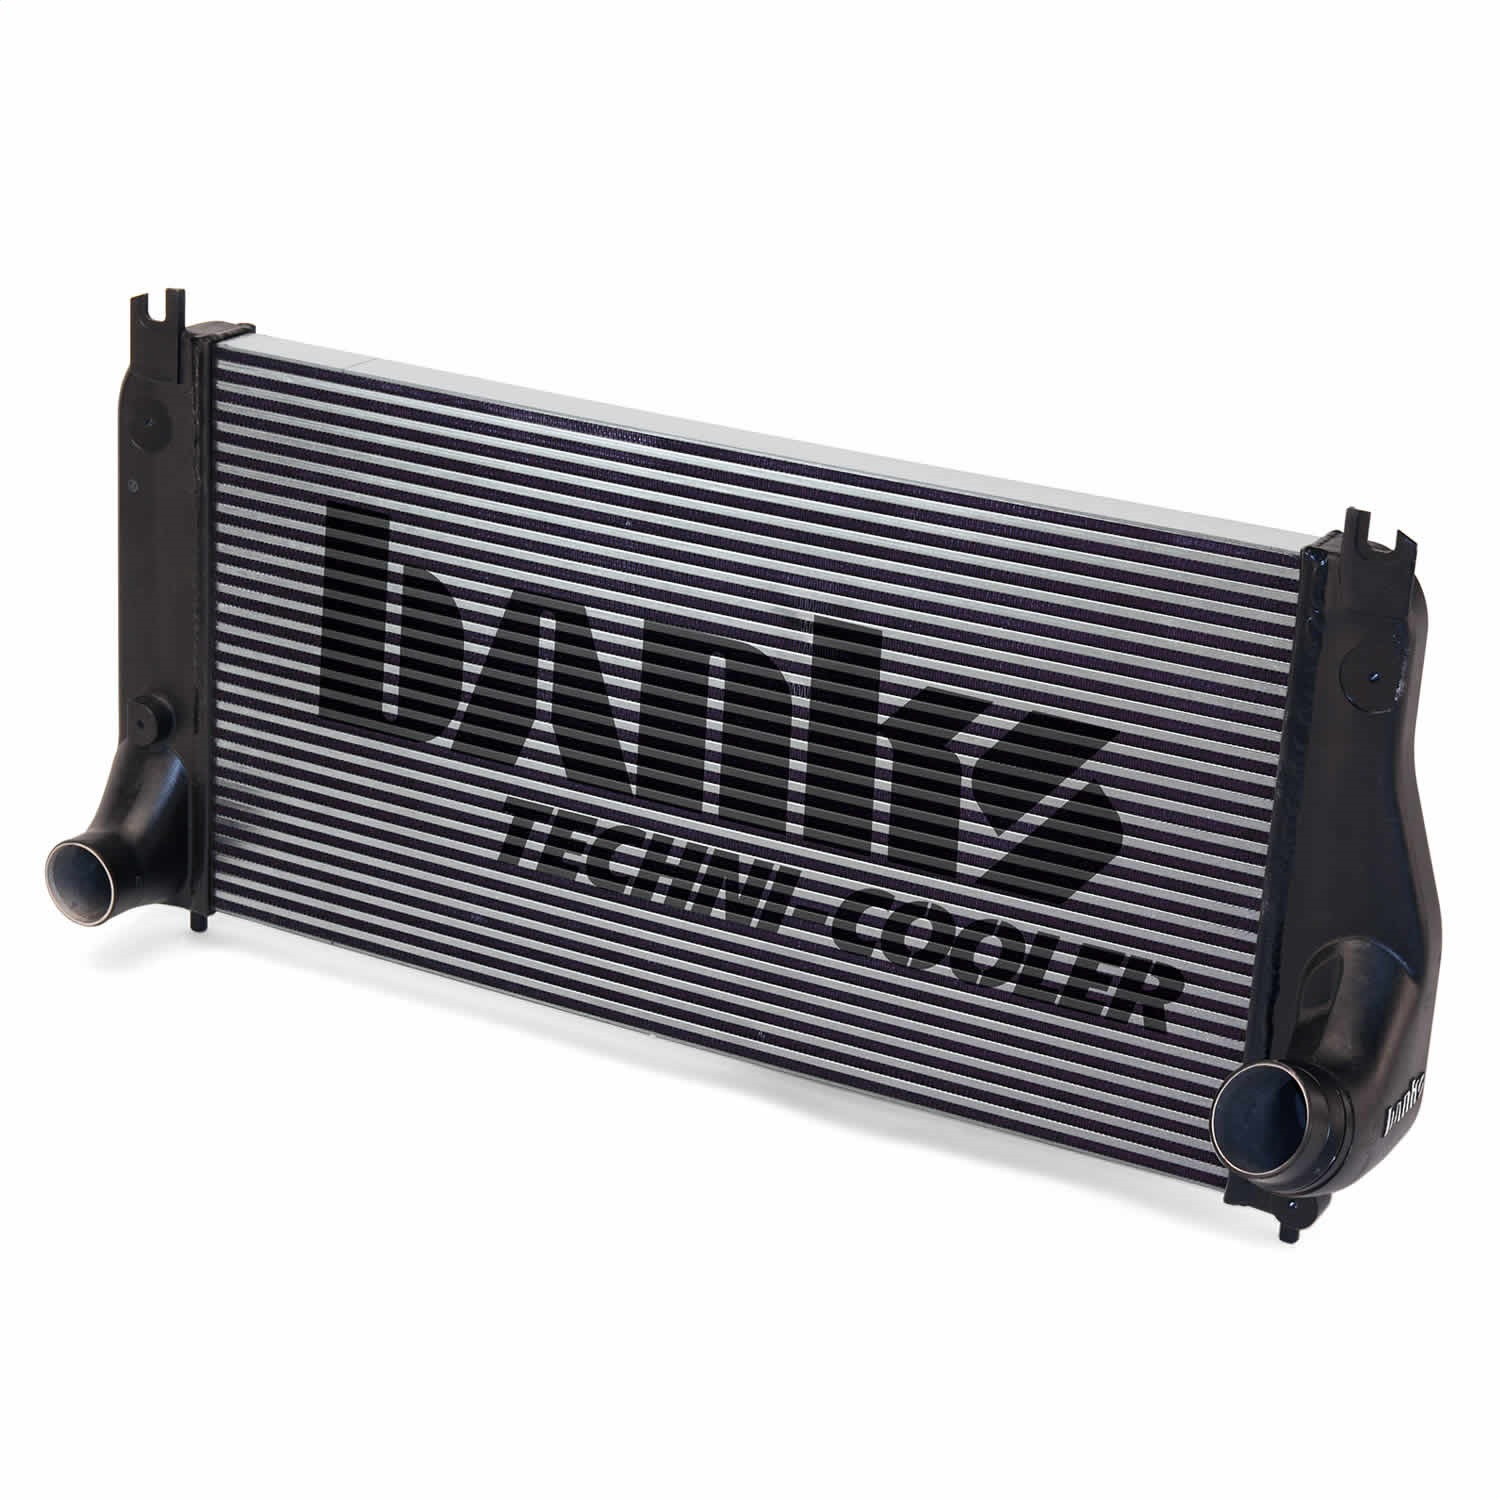 Banks Power 25982 Techni-Cooler Intercooler System